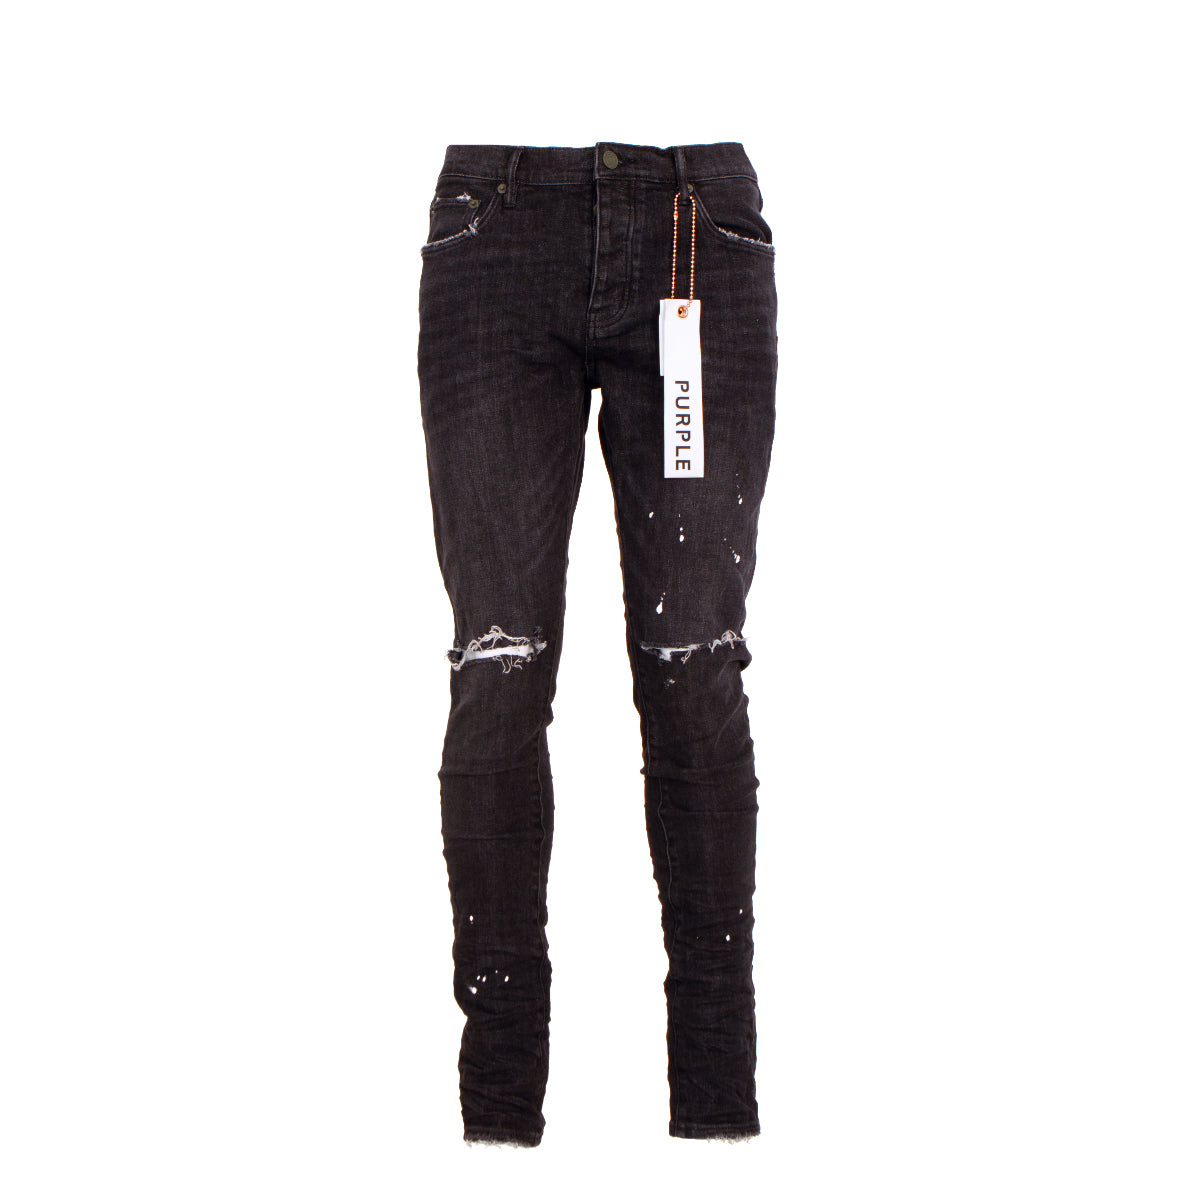 PURPLE Brand Men's Designer Jeans P001- Black Over Spray